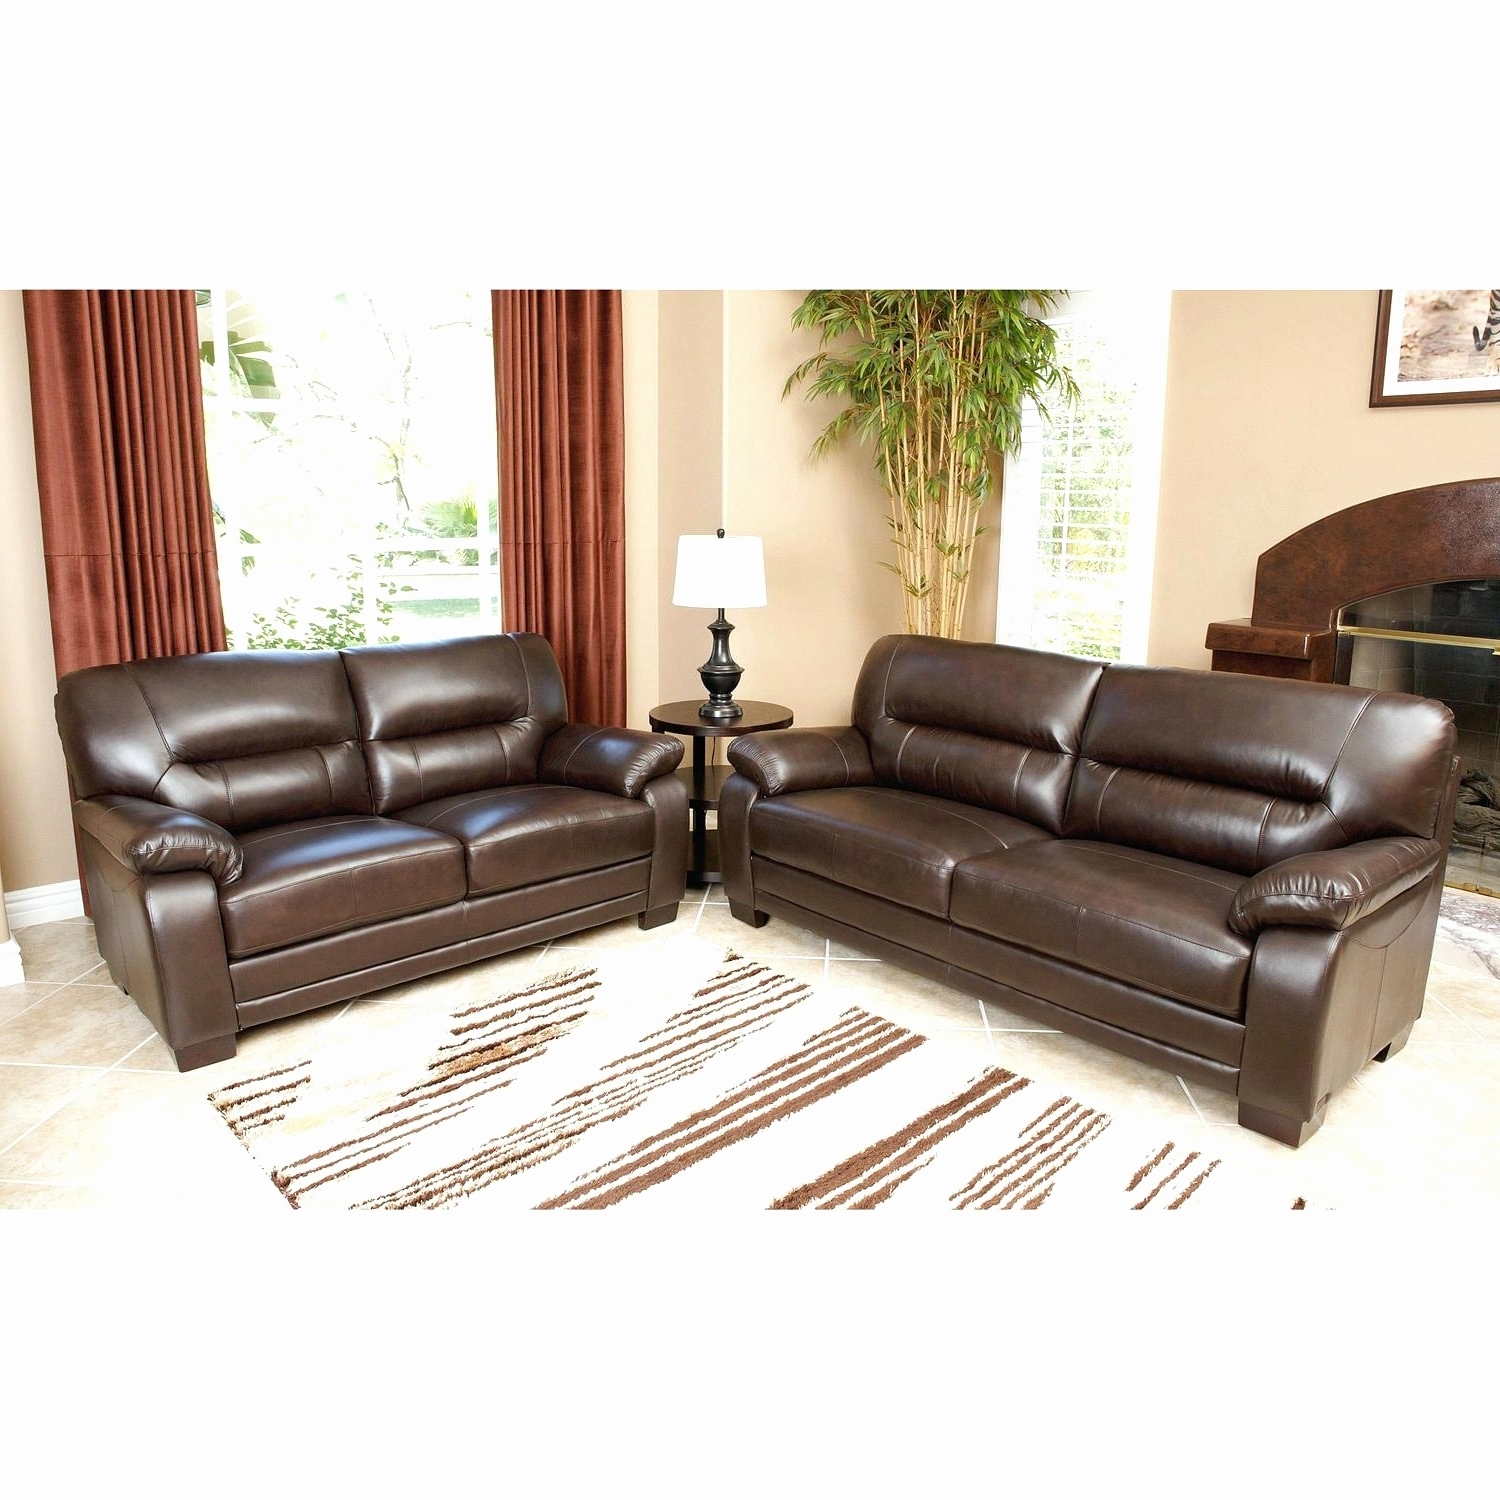 Well Known New Genuine Leather Couches For Sale 2018 – Couches And Sofas Ideas Pertaining To Sectional Sofas At Barrie (View 14 of 15)